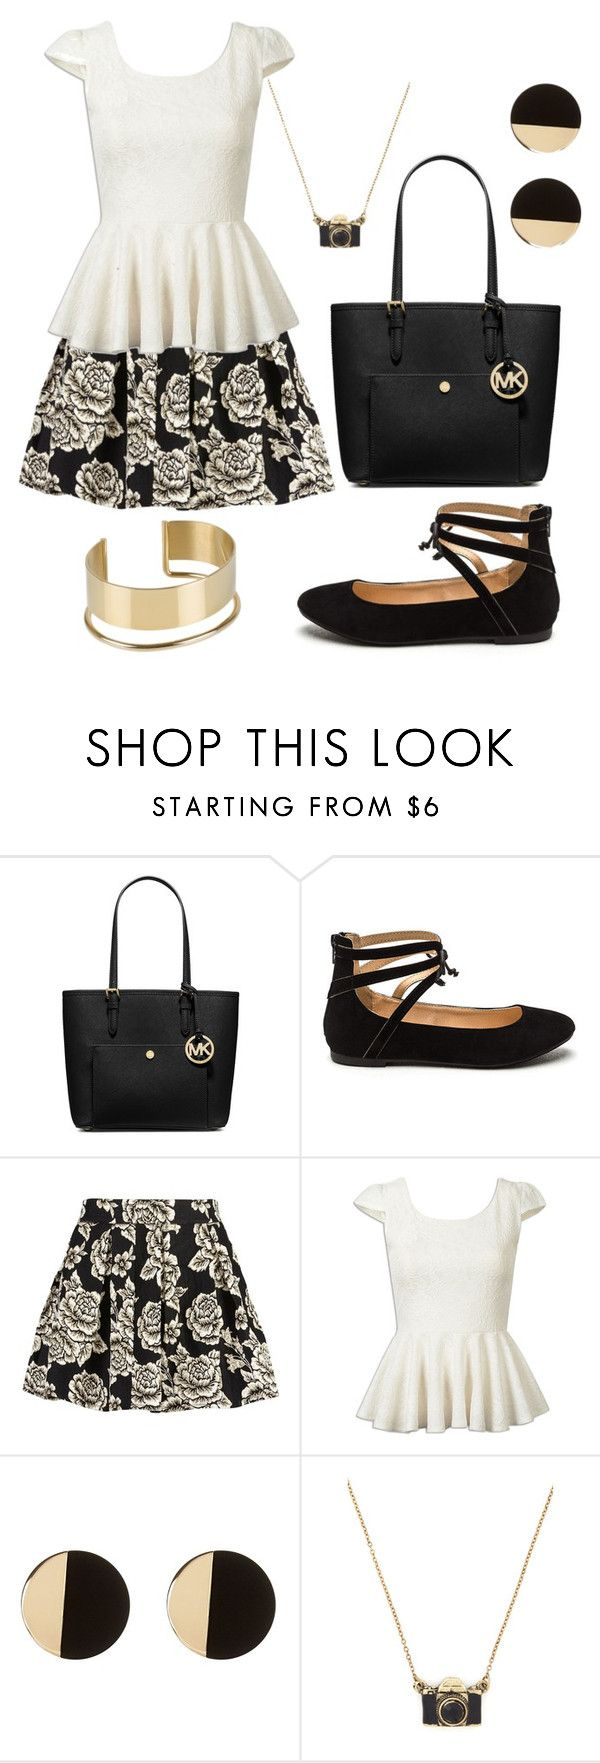 """""""Untitled #2464"""" by princessceairra ❤ liked on Polyvore featuring MICHAEL Michael Kors, Zibi London and By Malene Birger"""